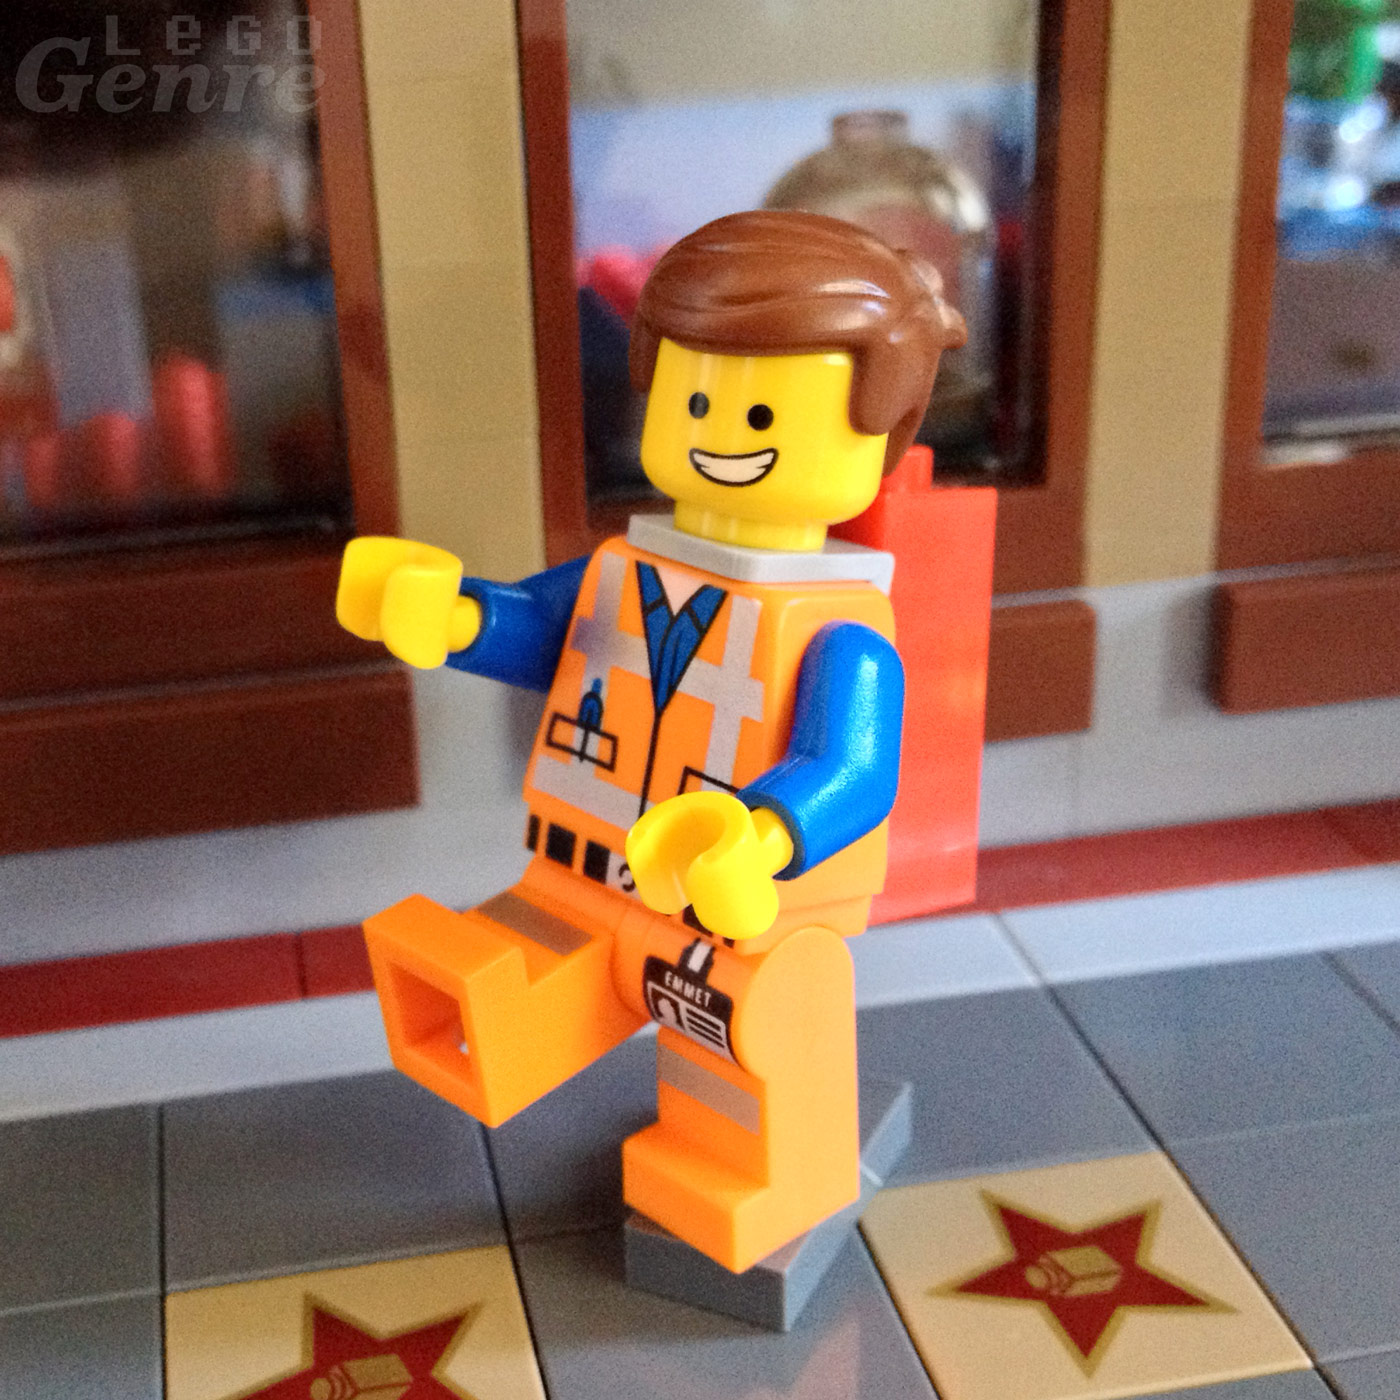 LegoGenre 00380: Wednesdays Are Awesome!